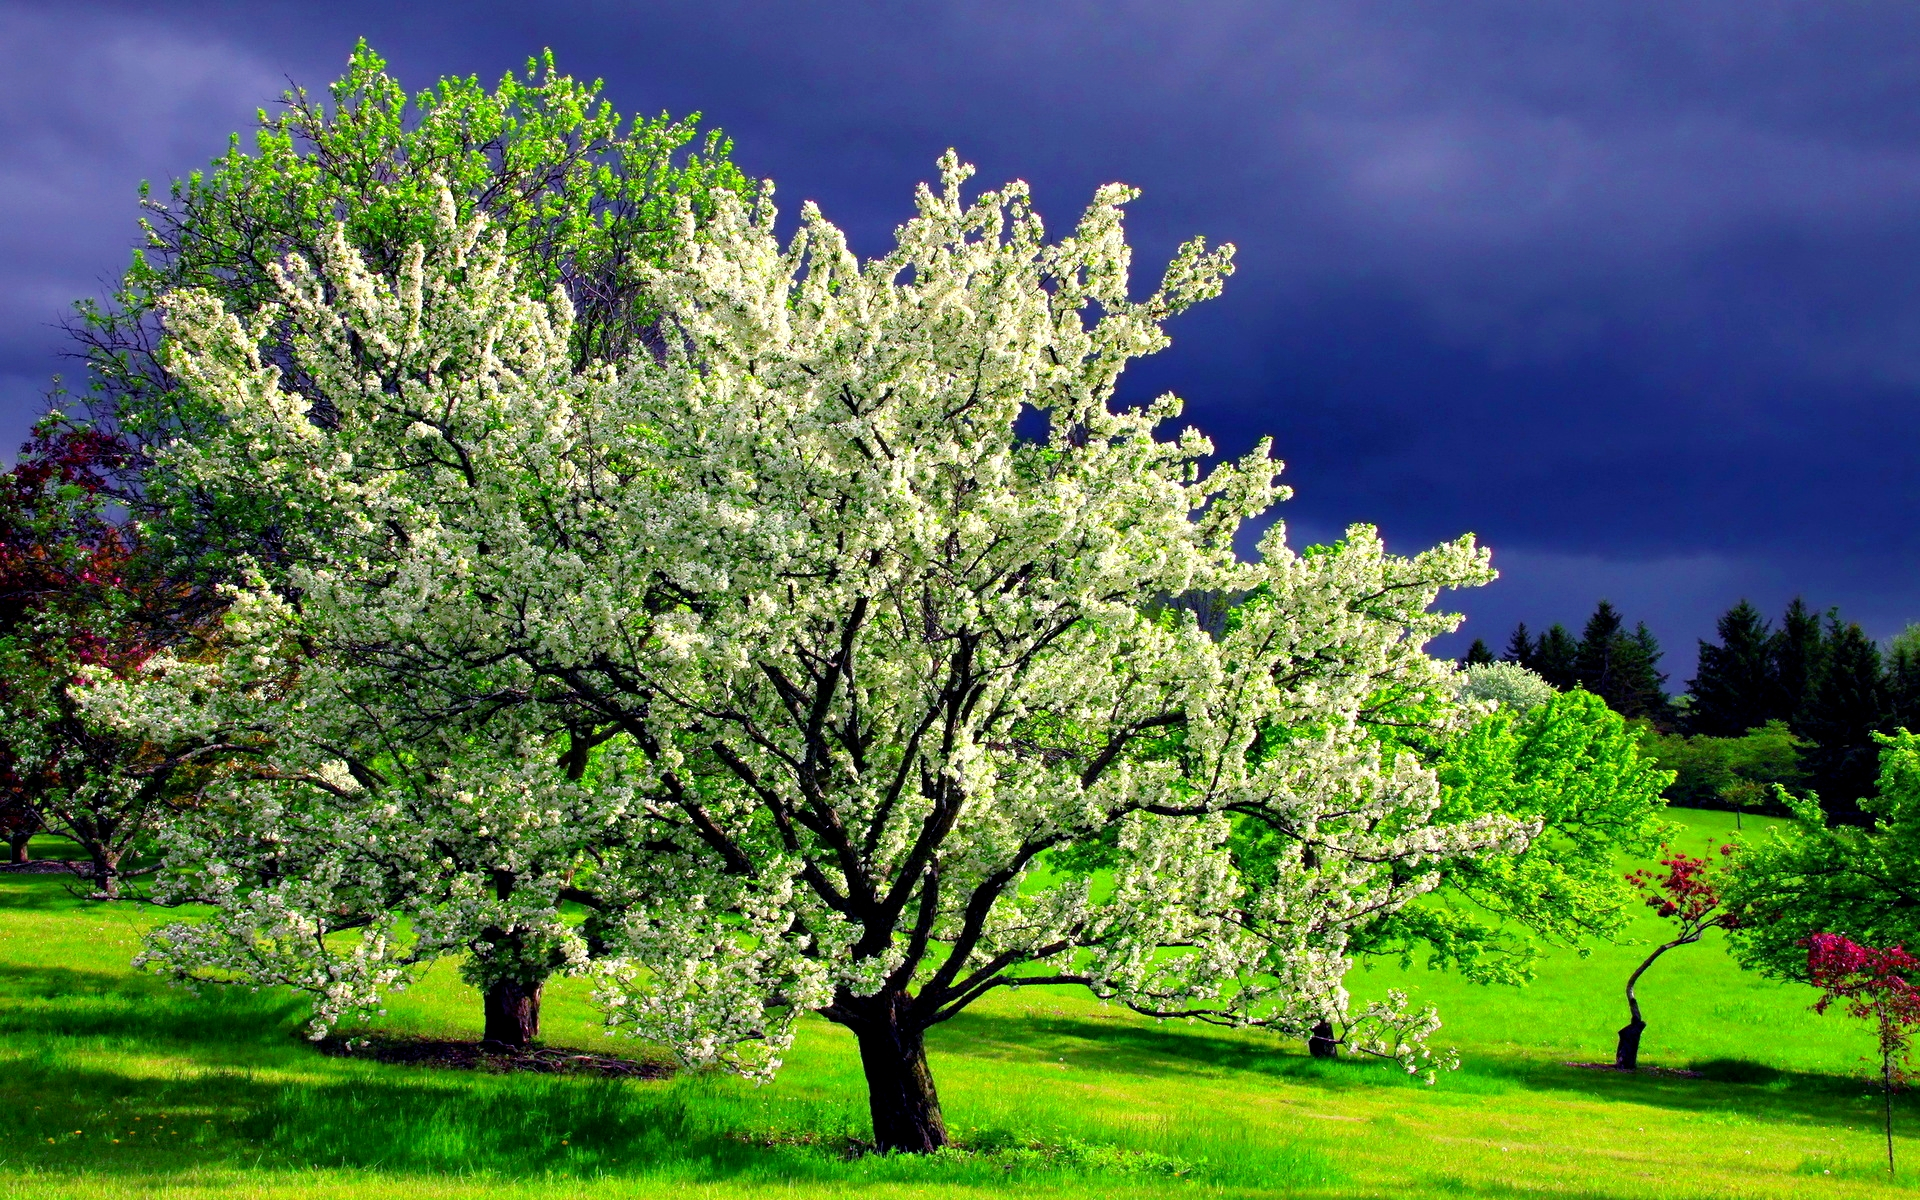 dream-spring-2012-spring-tree_1920x1200_96932